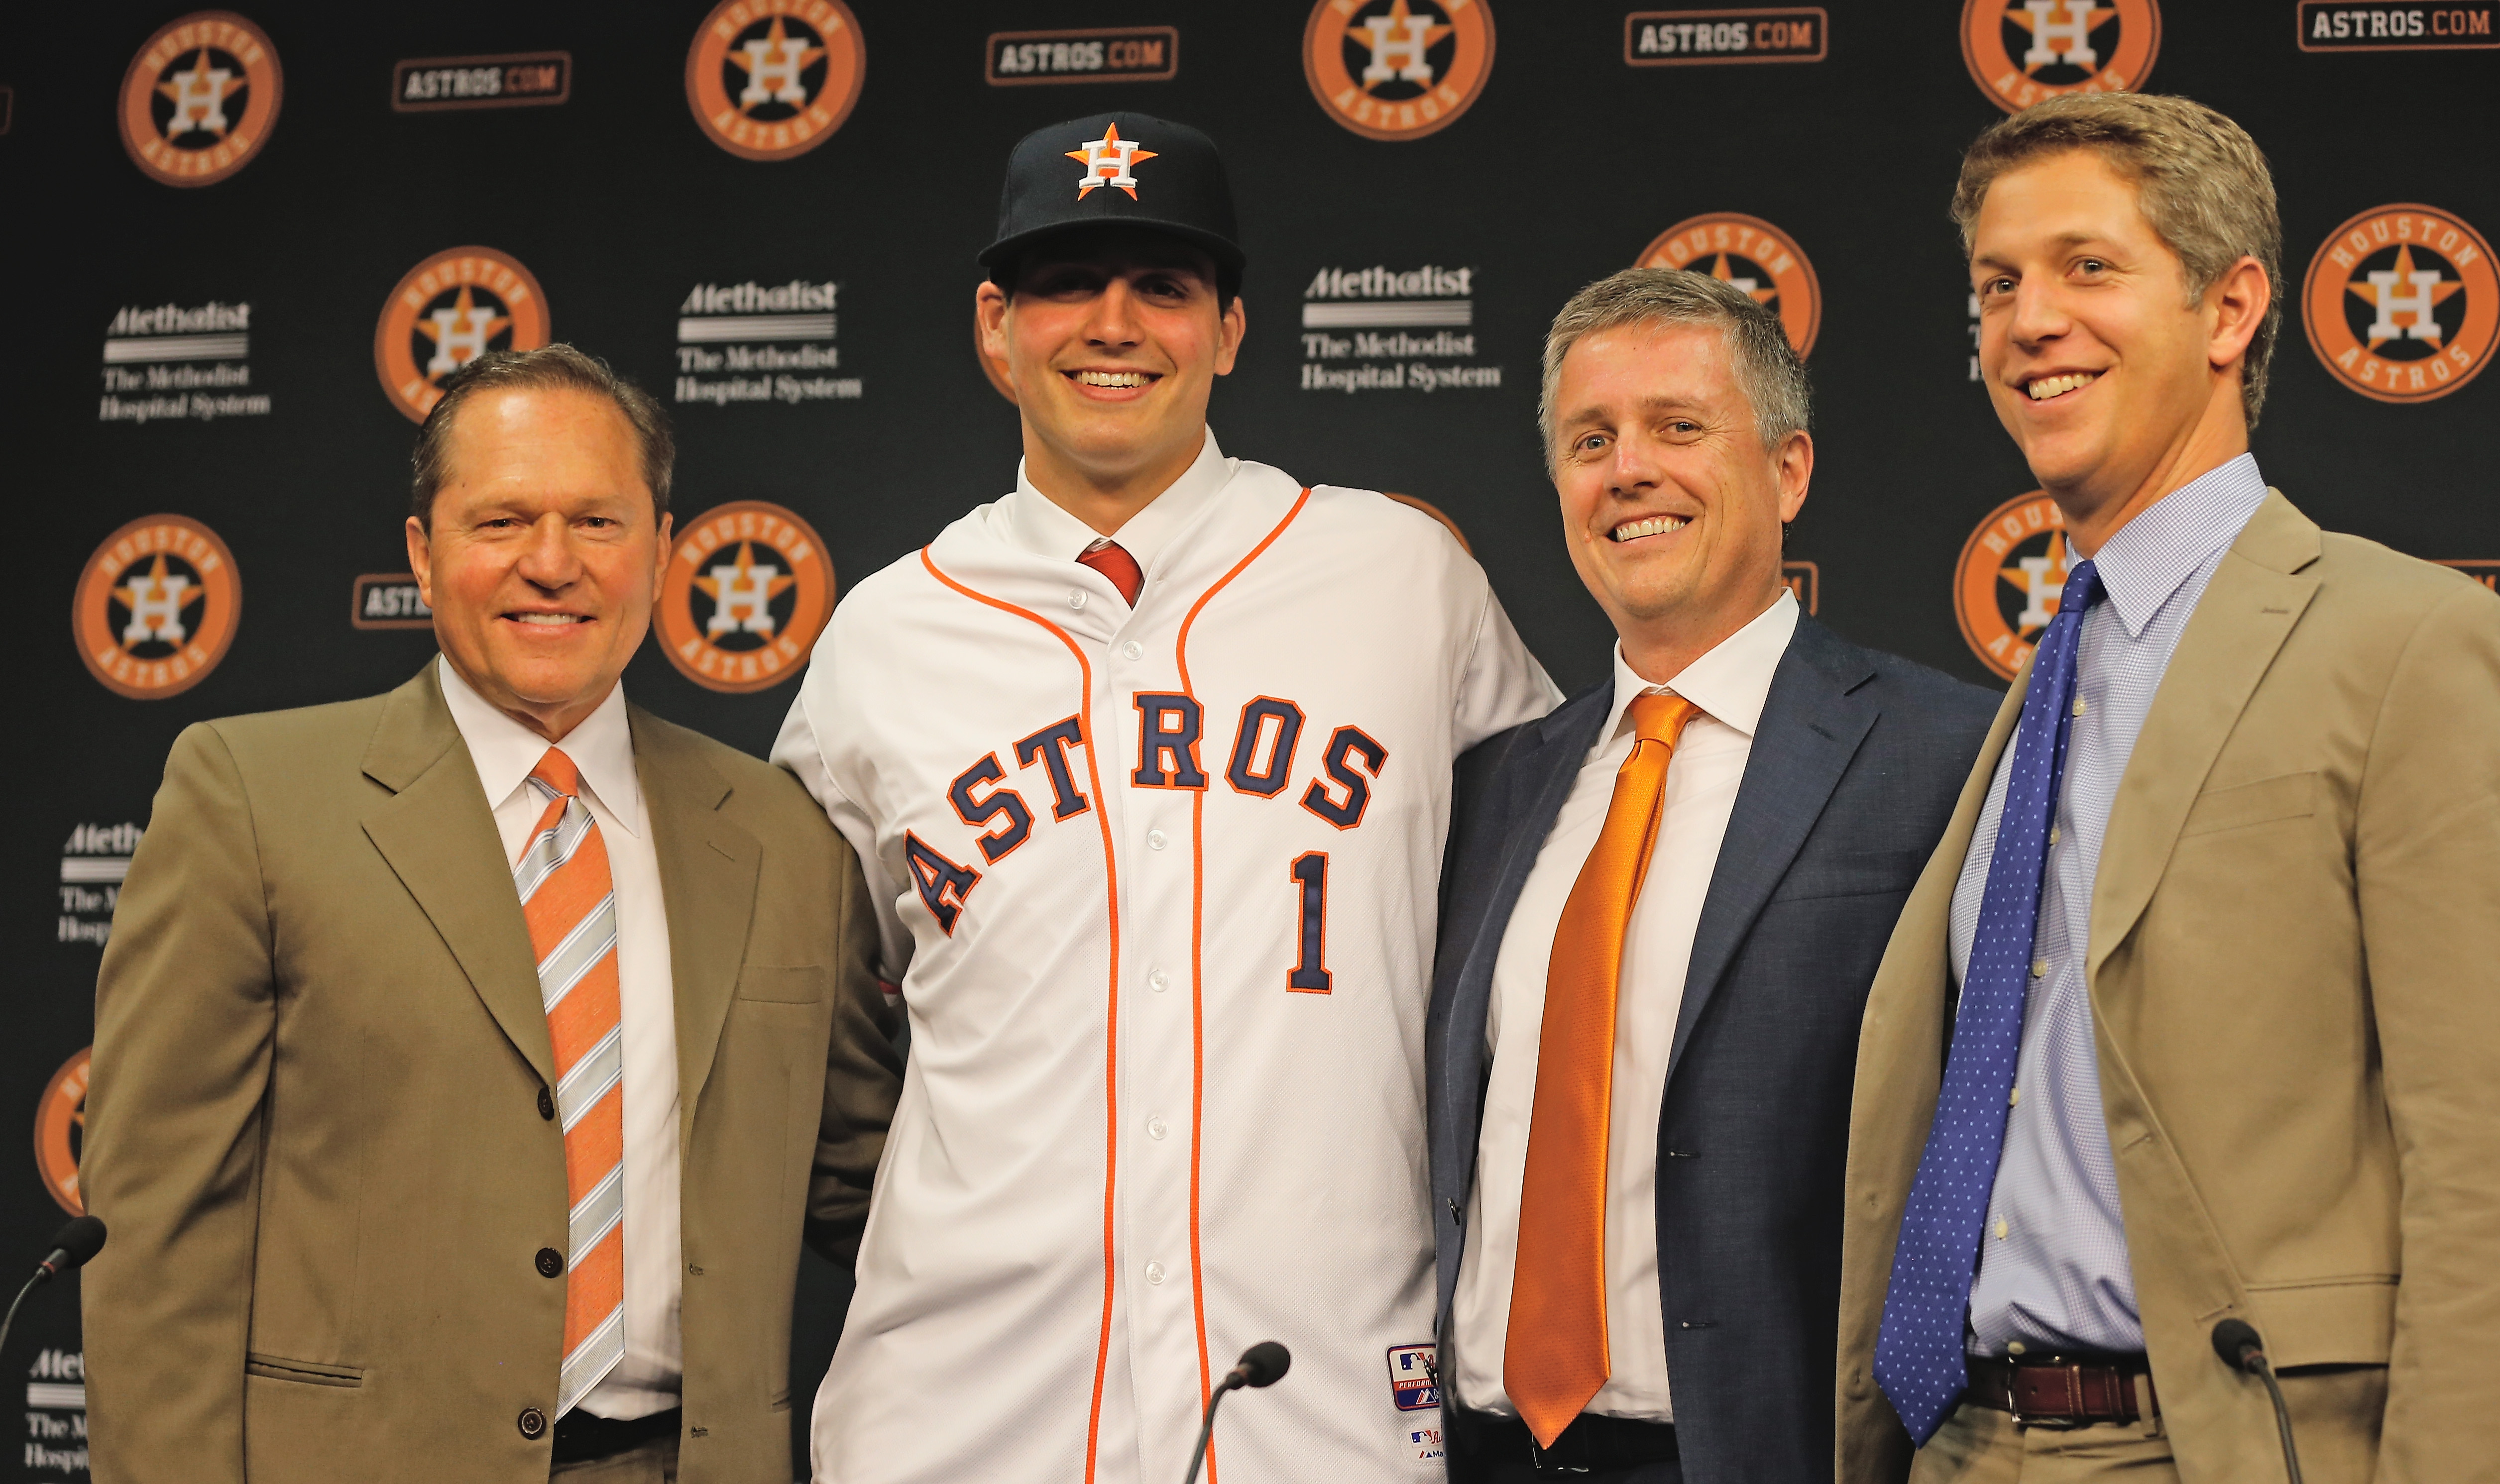 Mike Elias (pictured) and Quinton McCracken sat down with bloggers to discuss all things Astros baseball at Fan Fest